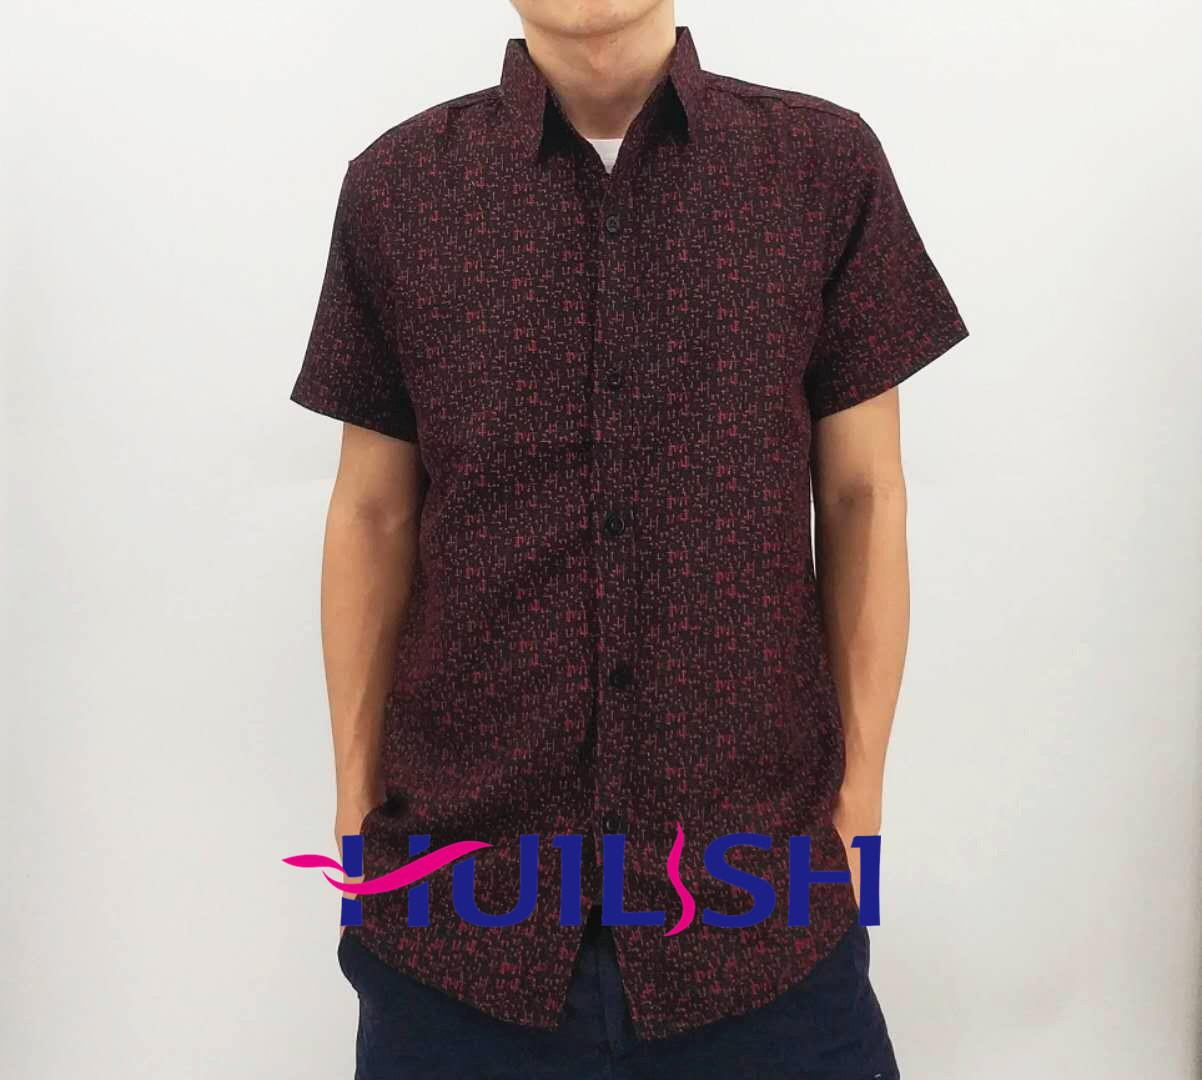 94196a064 Product details of Korean Fashion Short Sleeve Printed Shirt For Men For Idp  Shop